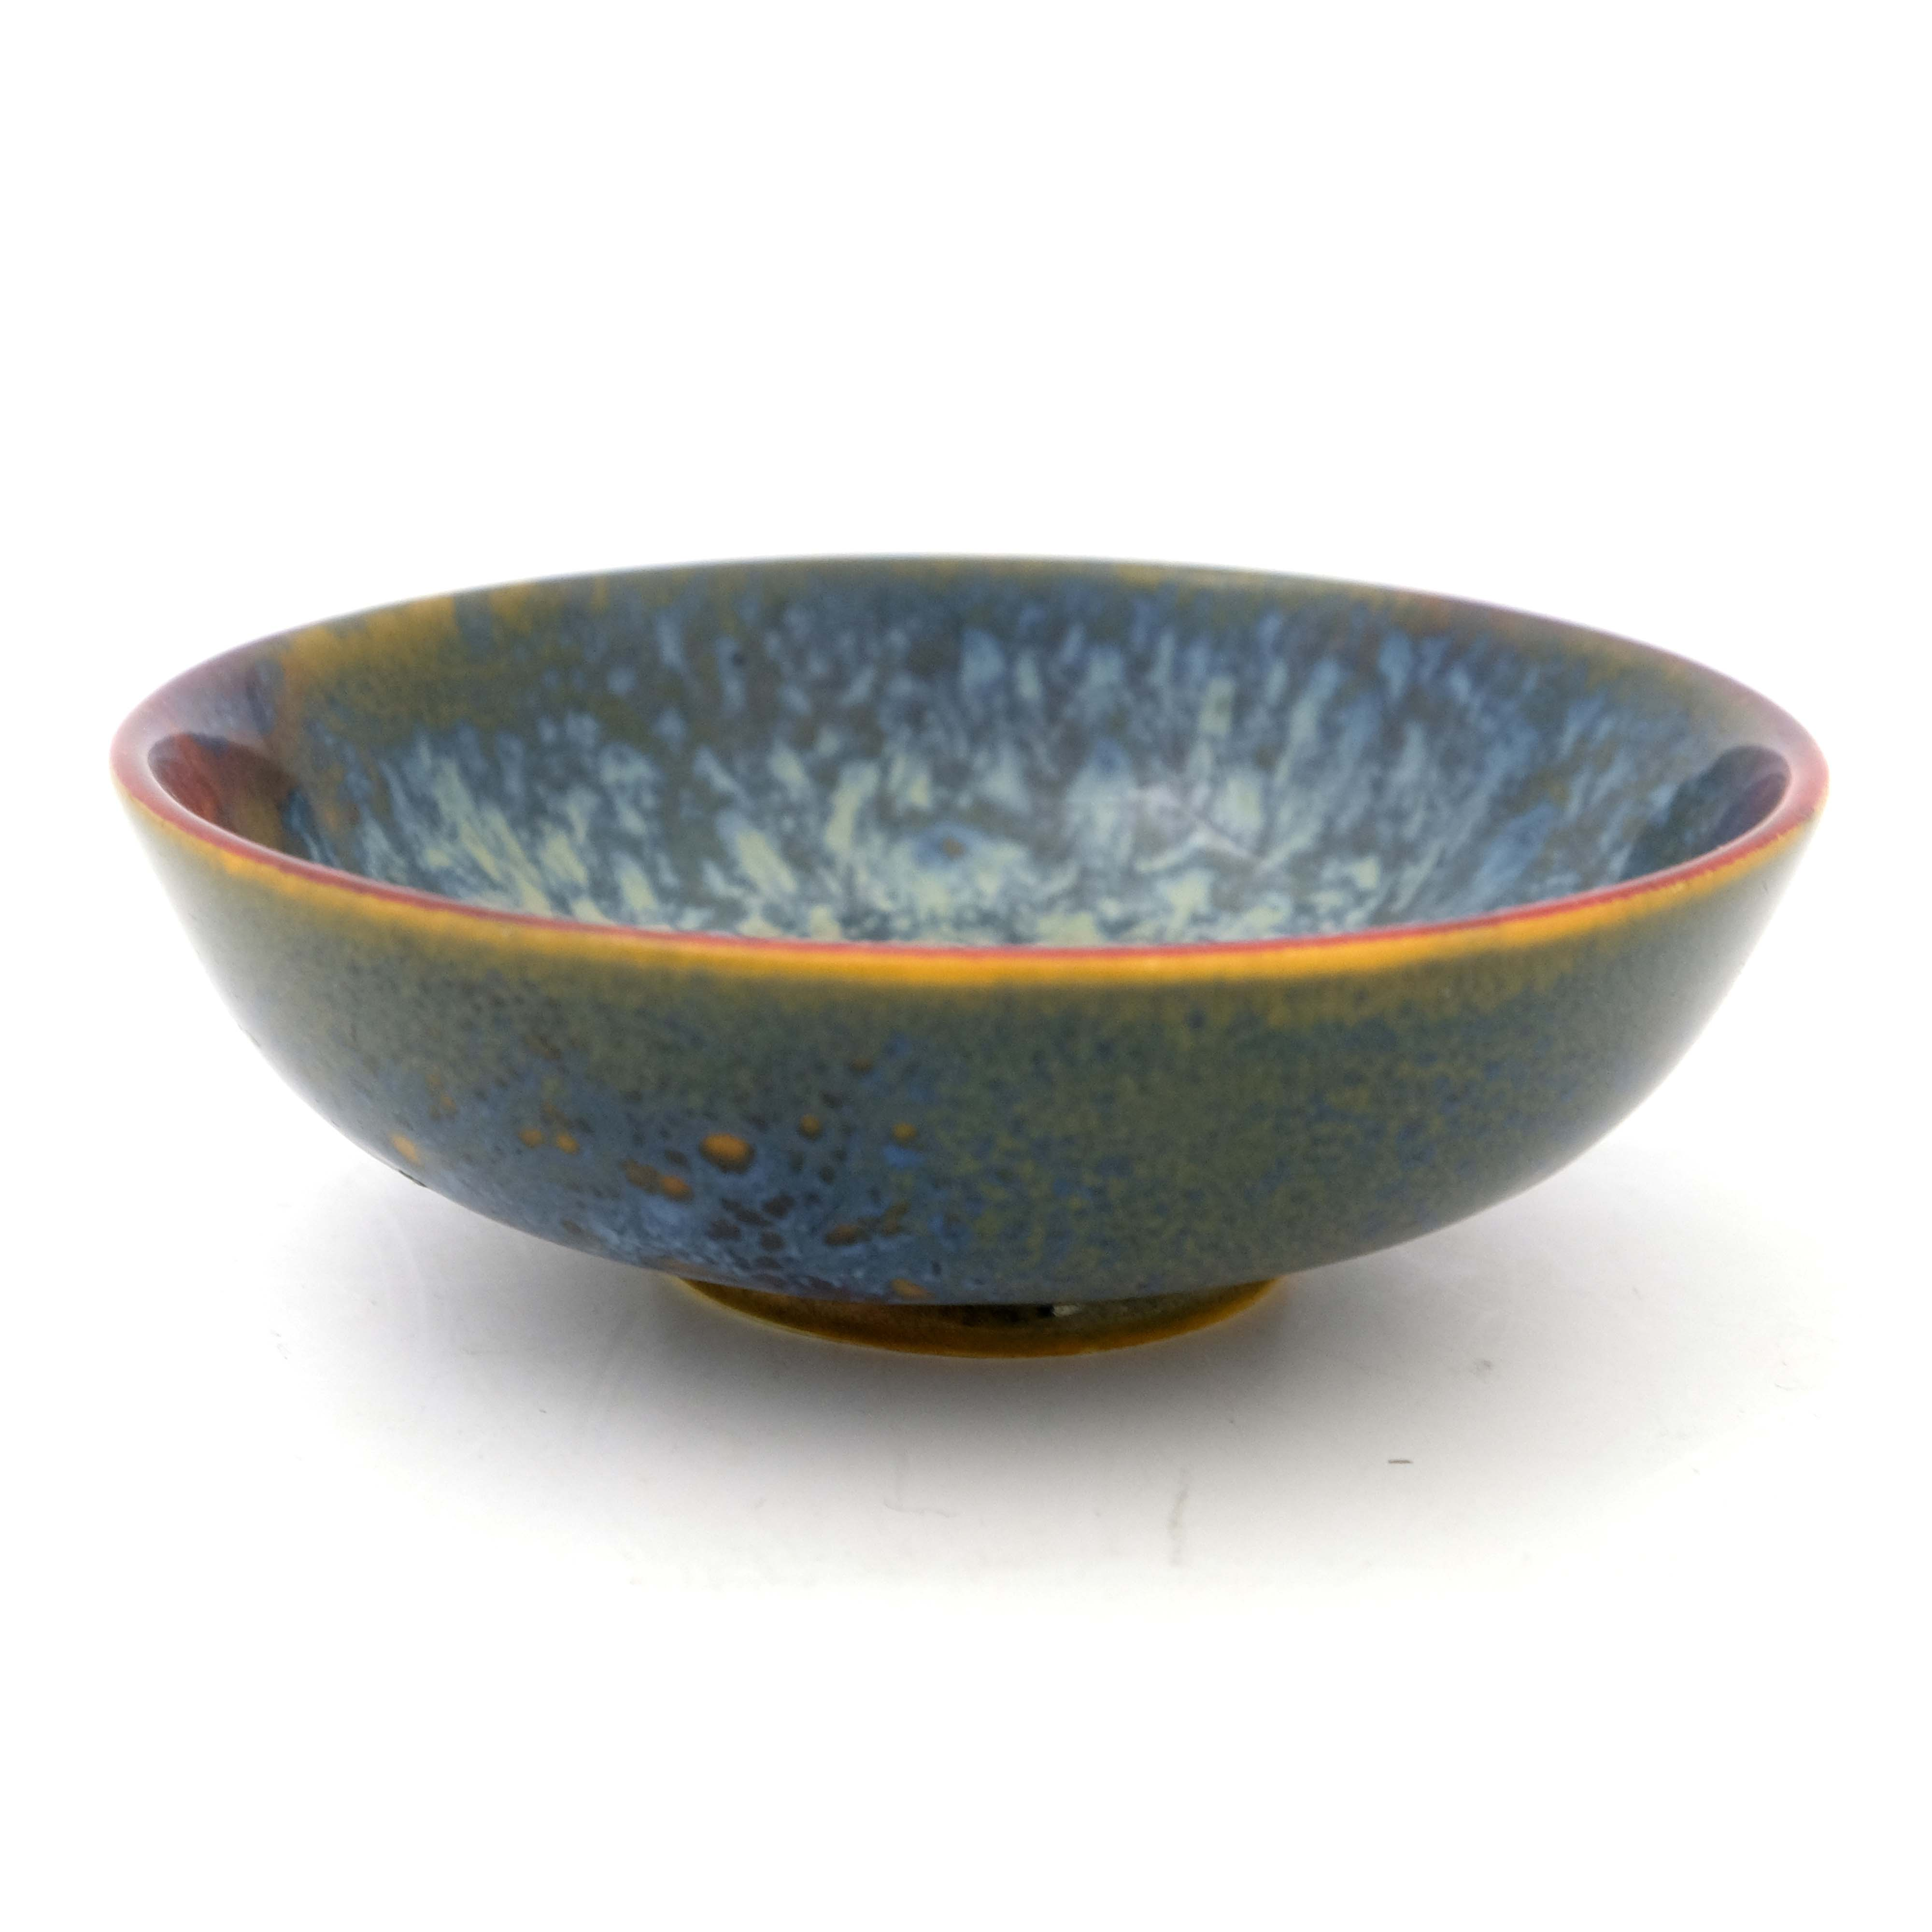 Harry Nixon for Royal Doulton, a Sung Flambe bowl - Image 2 of 5